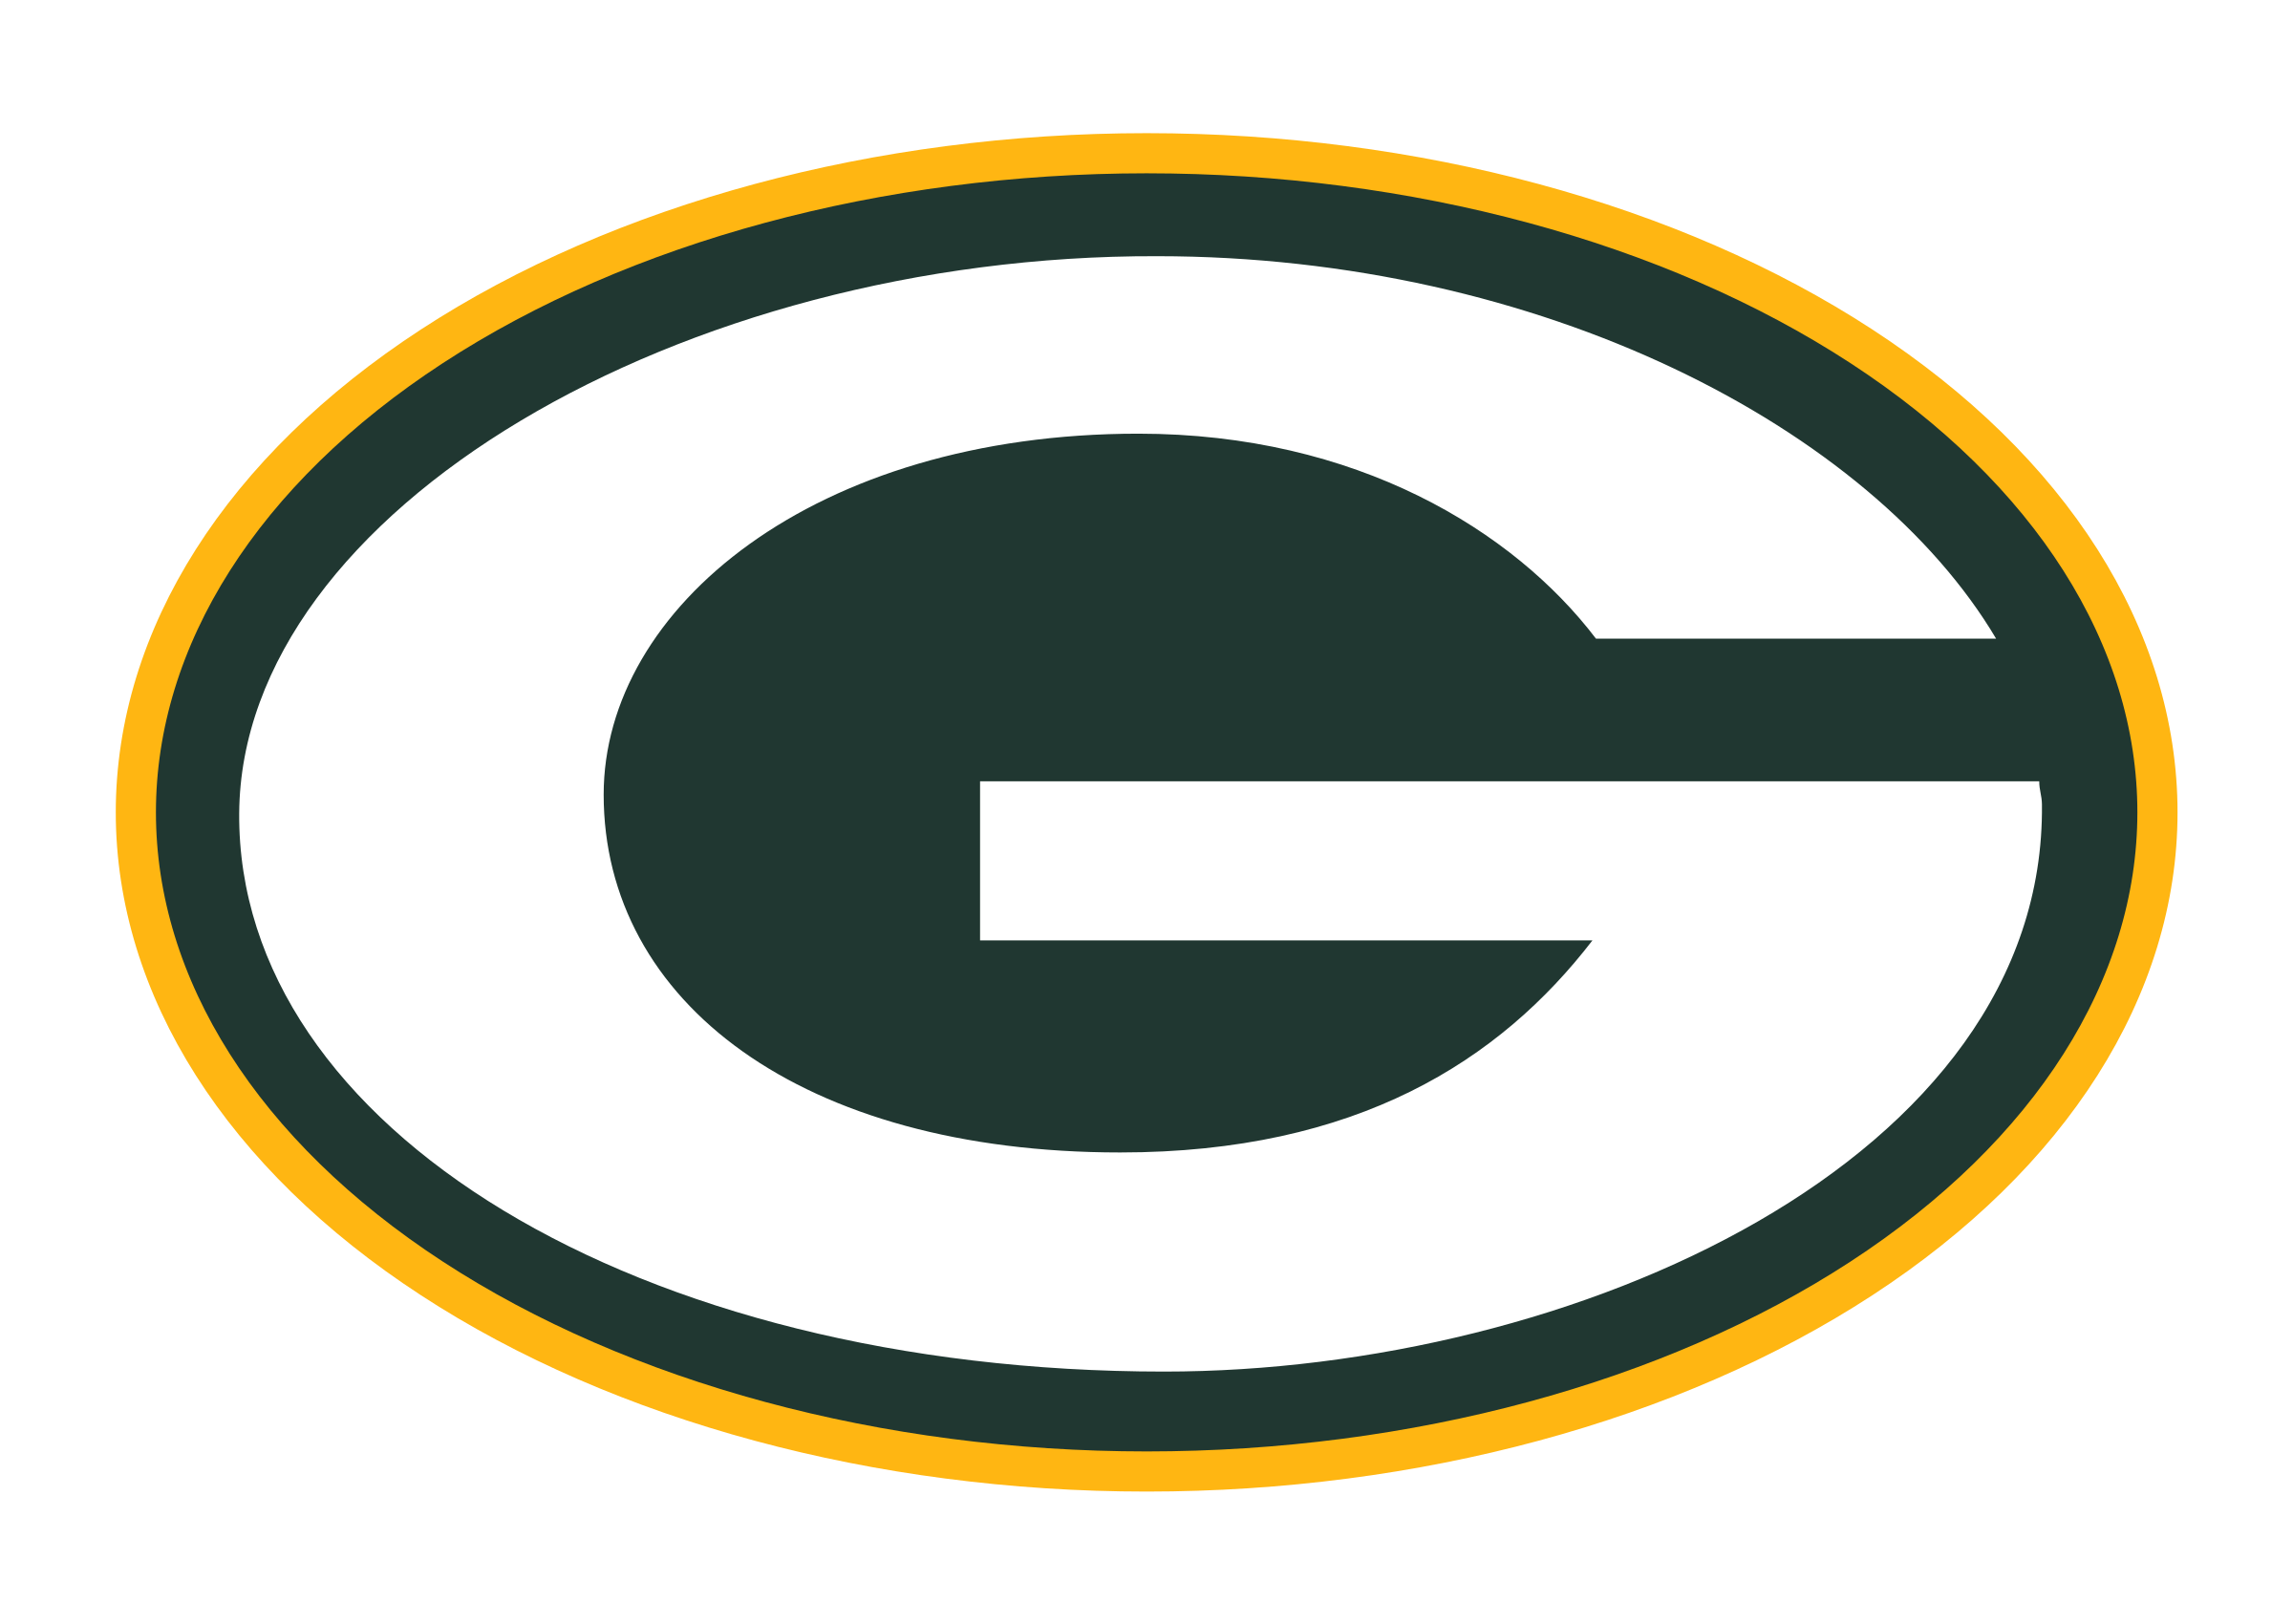 Packers football clipart clipart transparent stock Green Bay Packers Logo PNG Transparent & SVG Vector - Freebie Supply clipart transparent stock